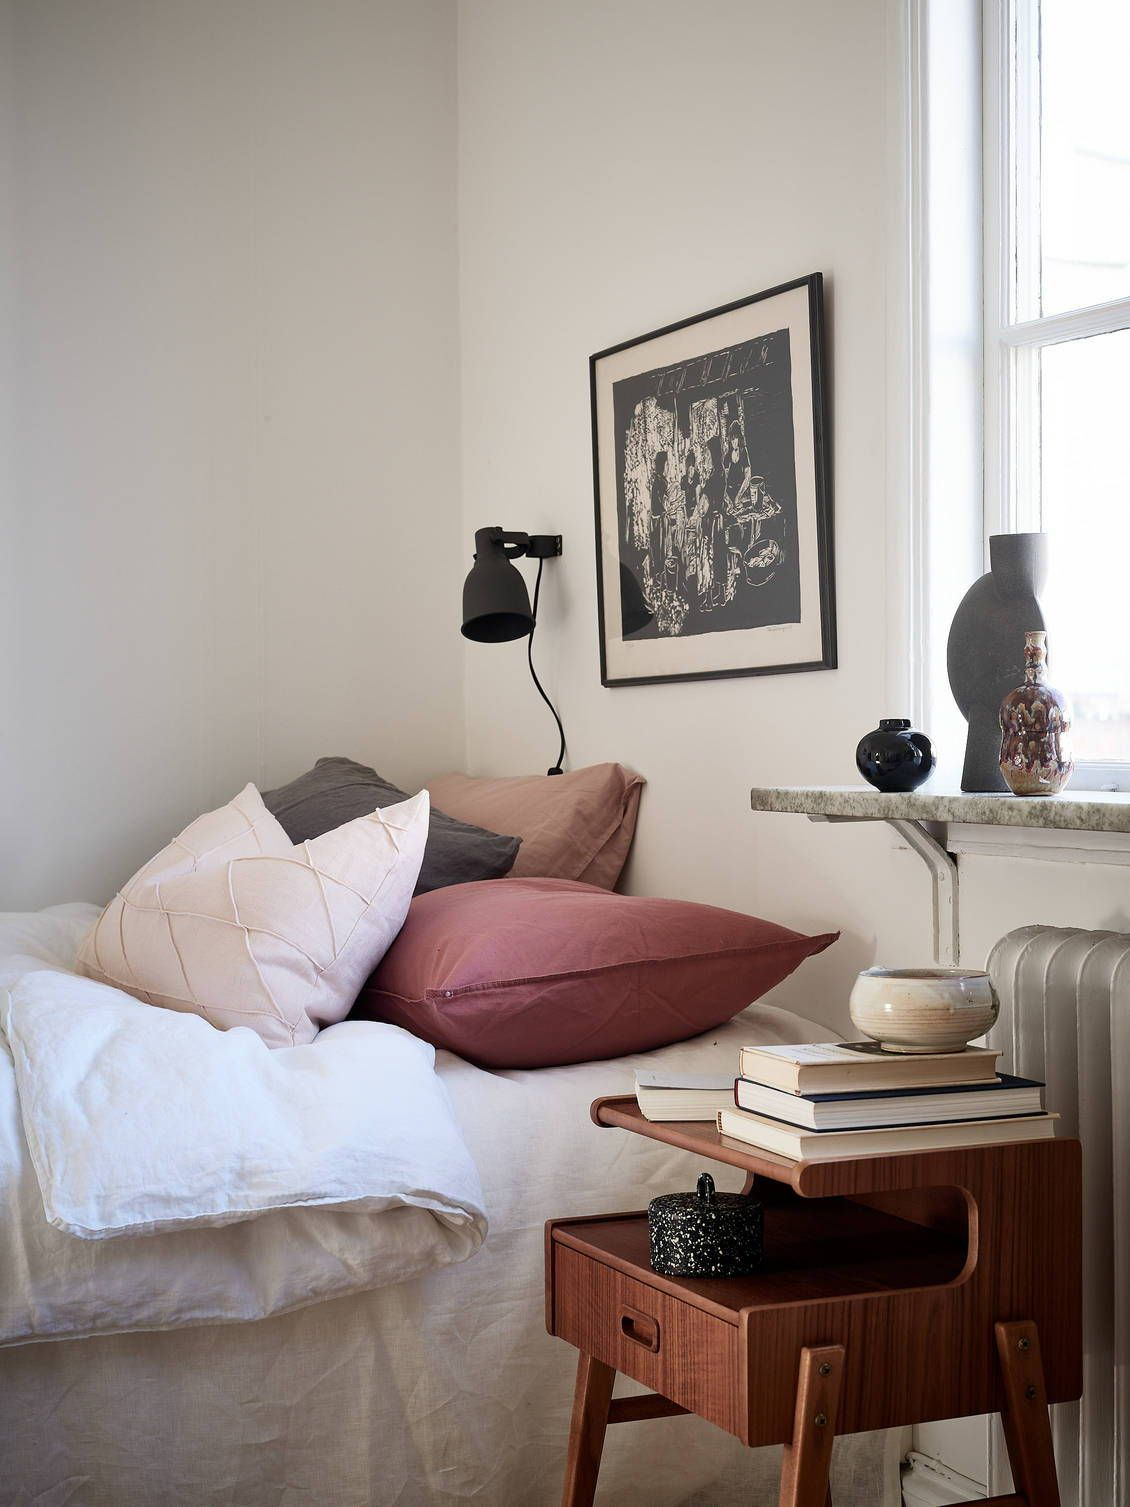 Cozy studio space with lots of details - COCO LAPINE DESIGN